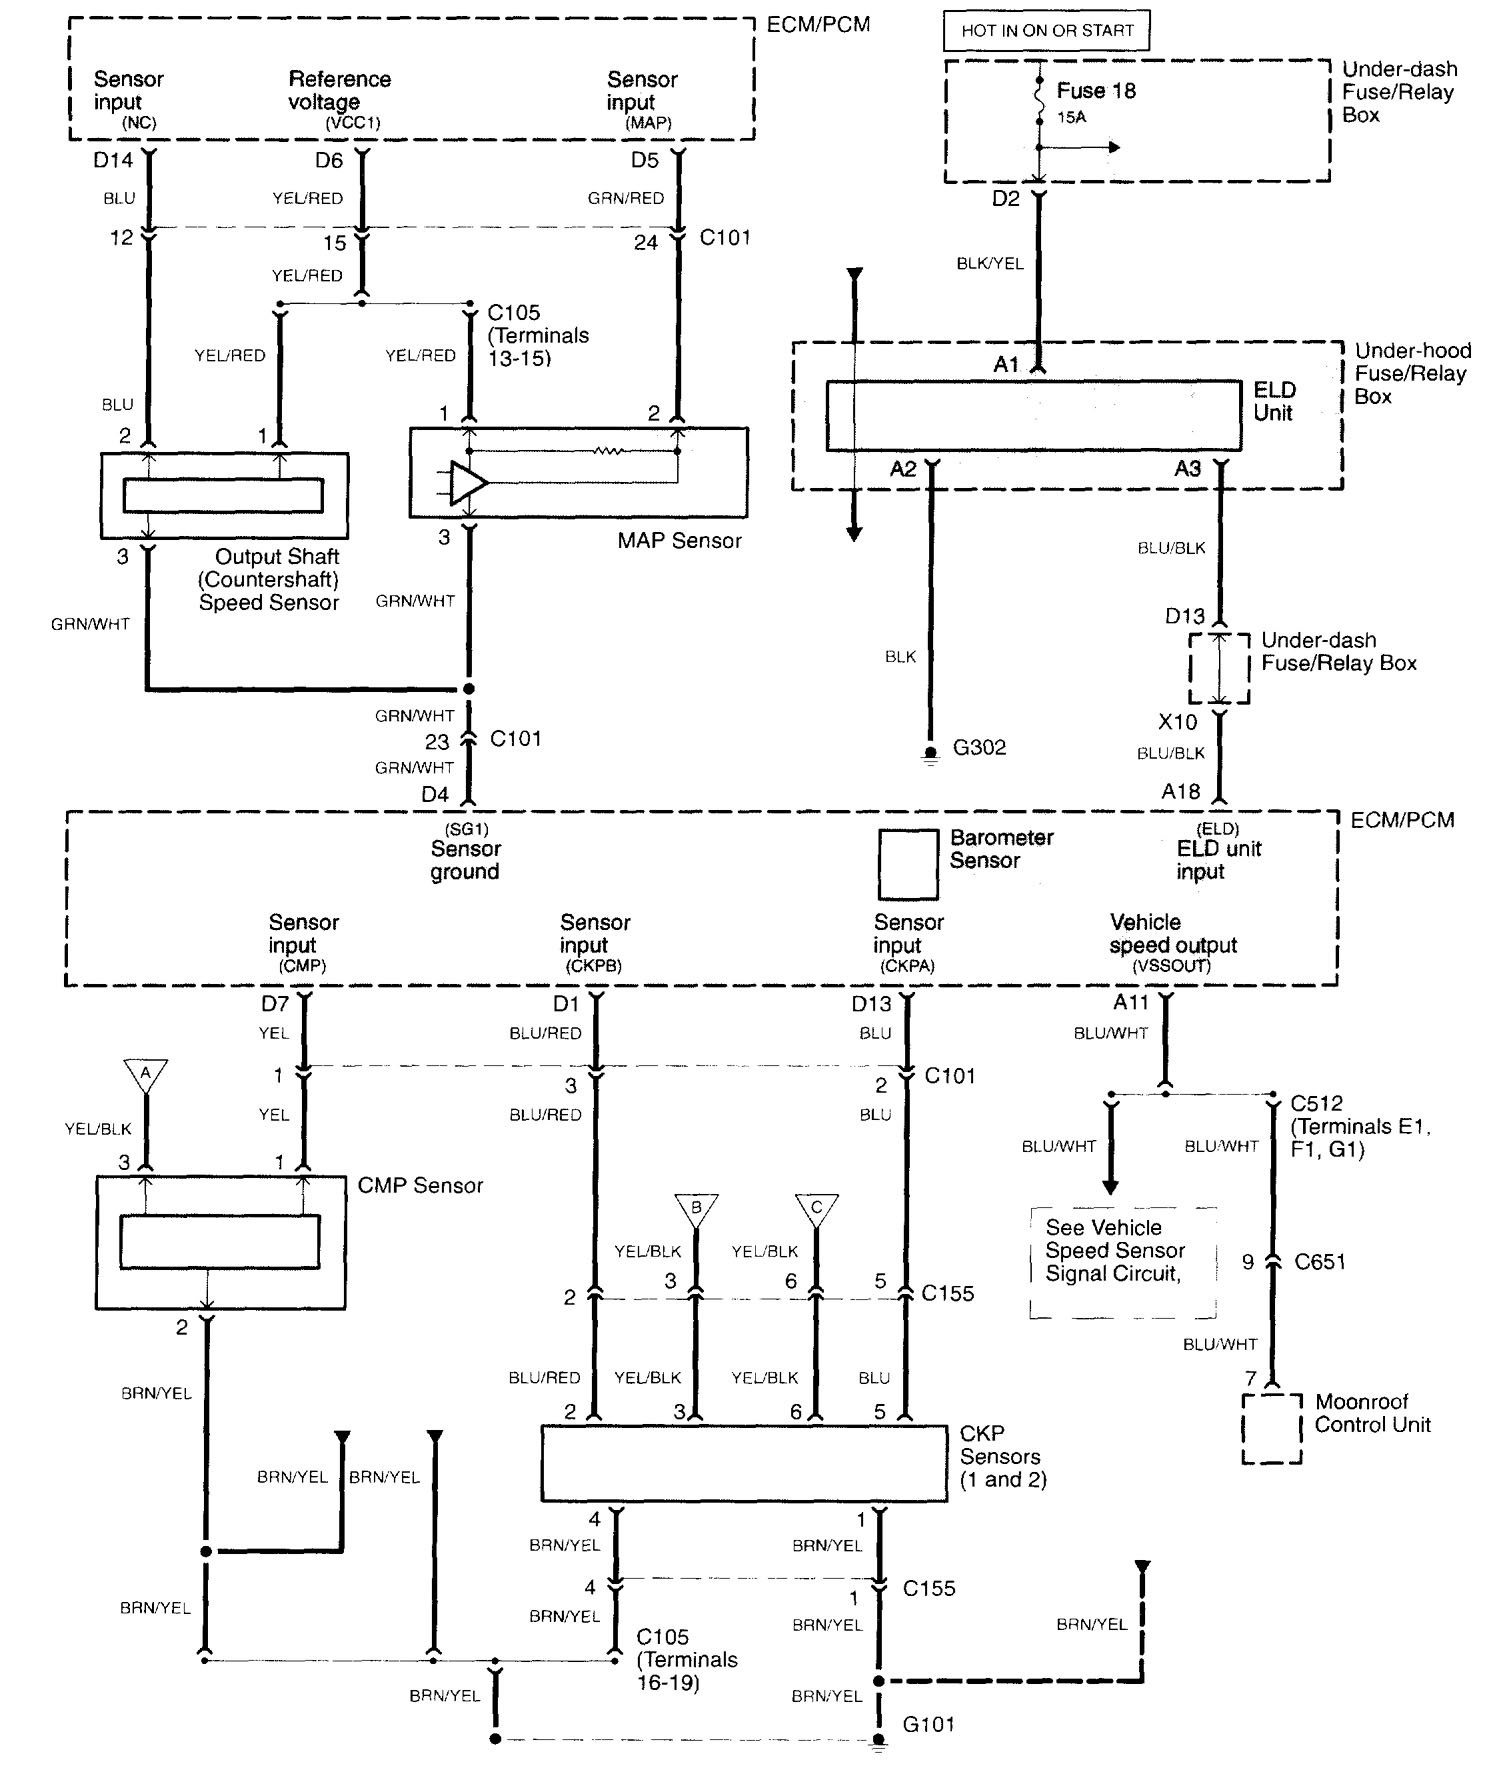 1999 acura cl stereo wiring diagram cable tv house nissan almera 2006 fuse box master cylinder